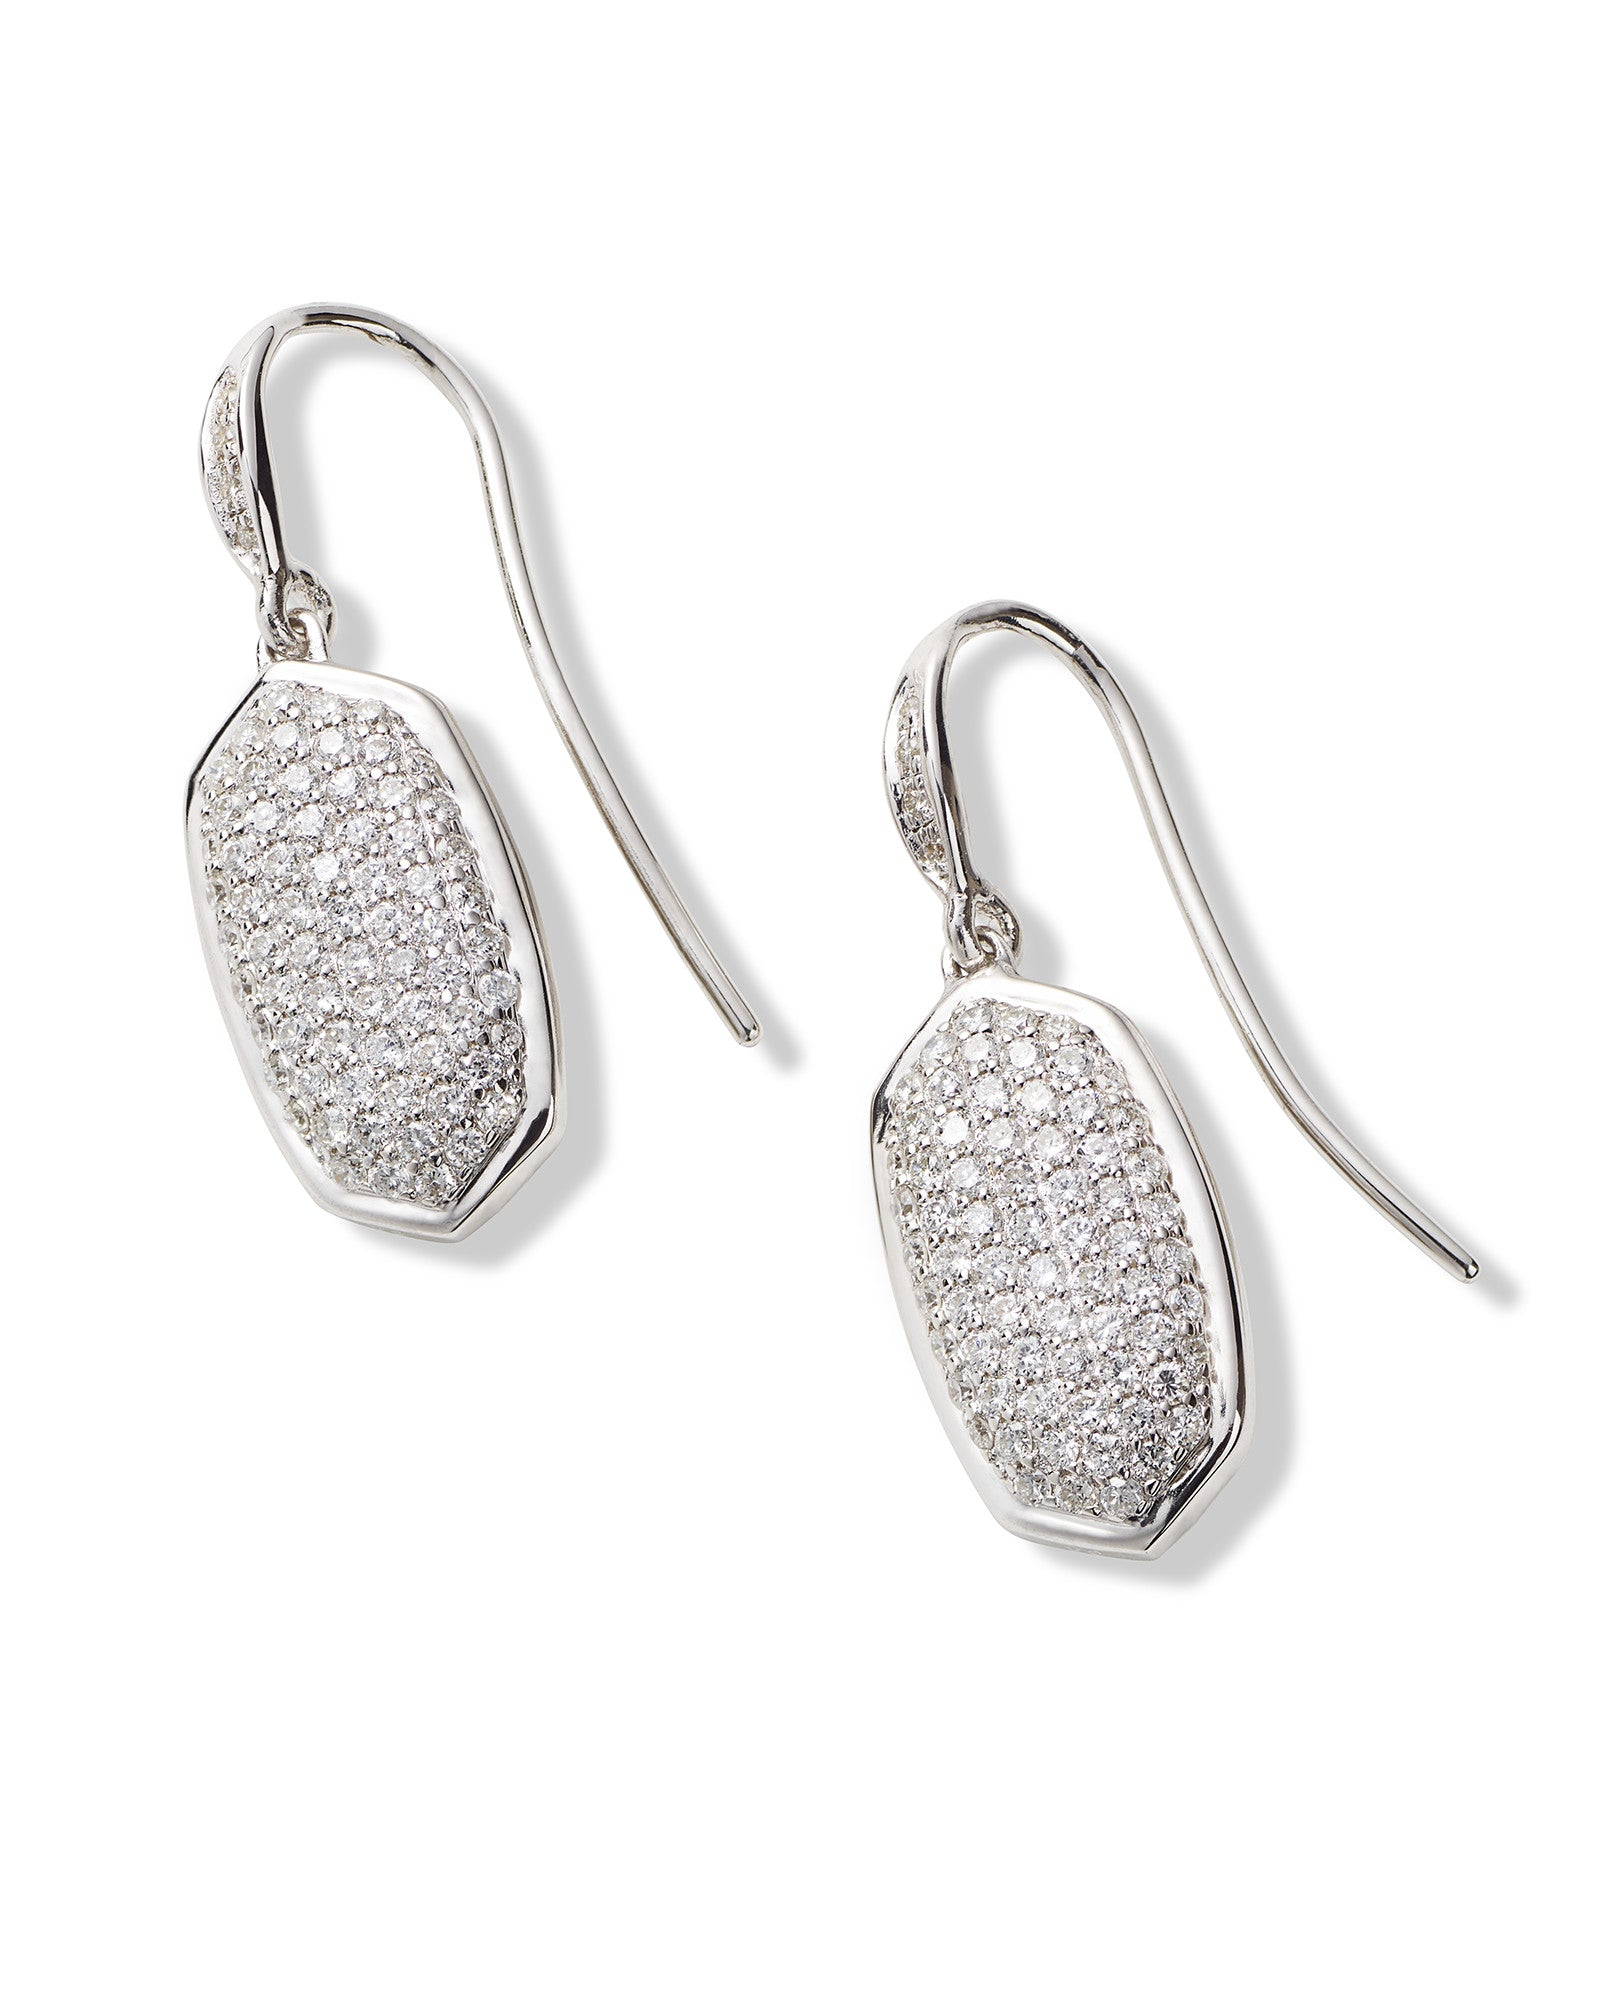 Made with Swarovski Crystal 18K White Gold Pave Drop Earrings - CharmToSpare